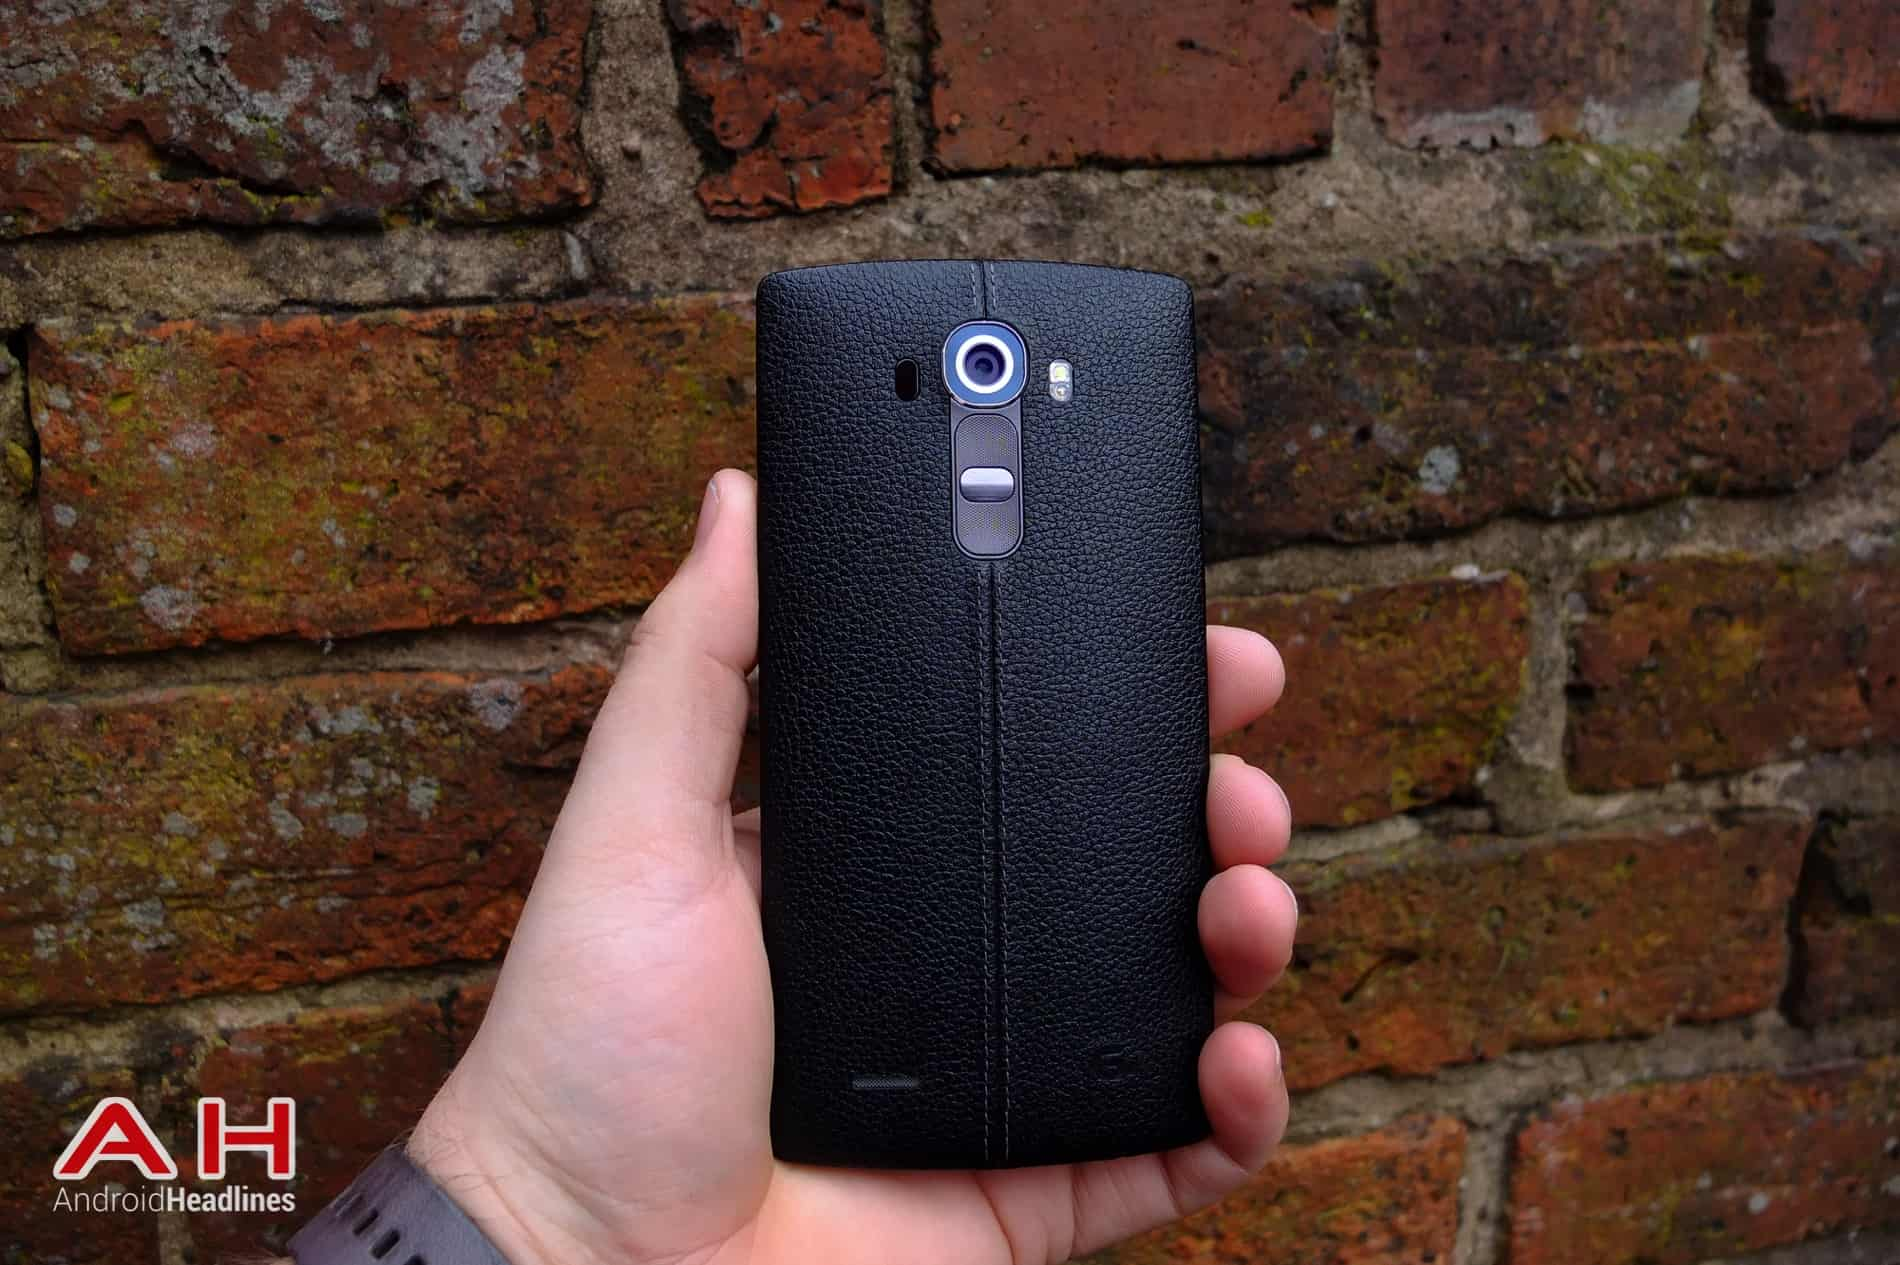 LG G4 BlackLeather TD AH 18